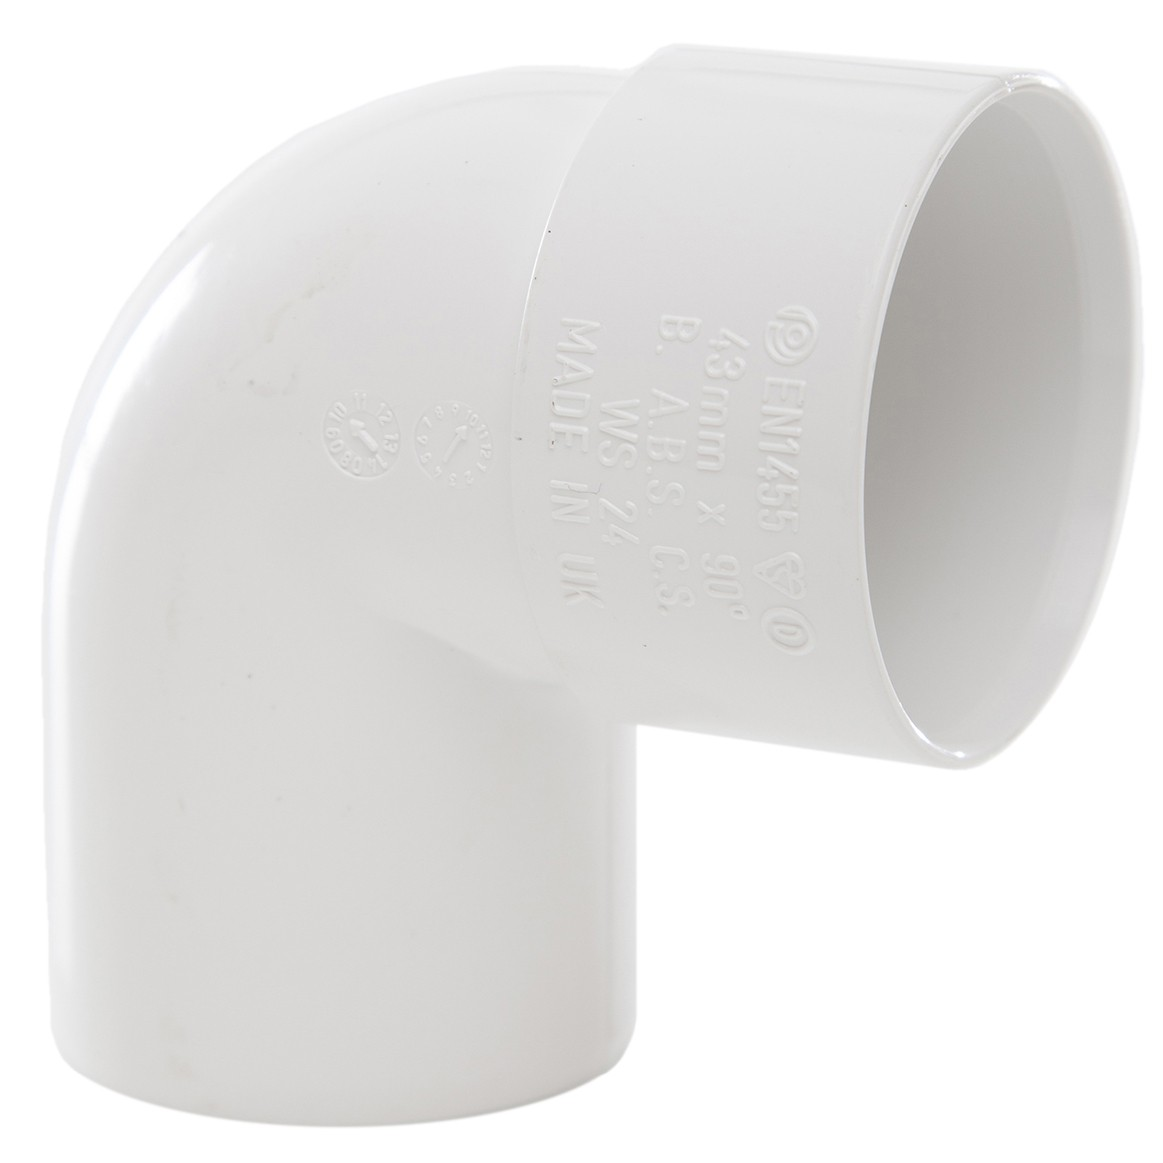 Polypipe 40mm Solvent Weld Waste 92.5 Degree Swivel Bend - White